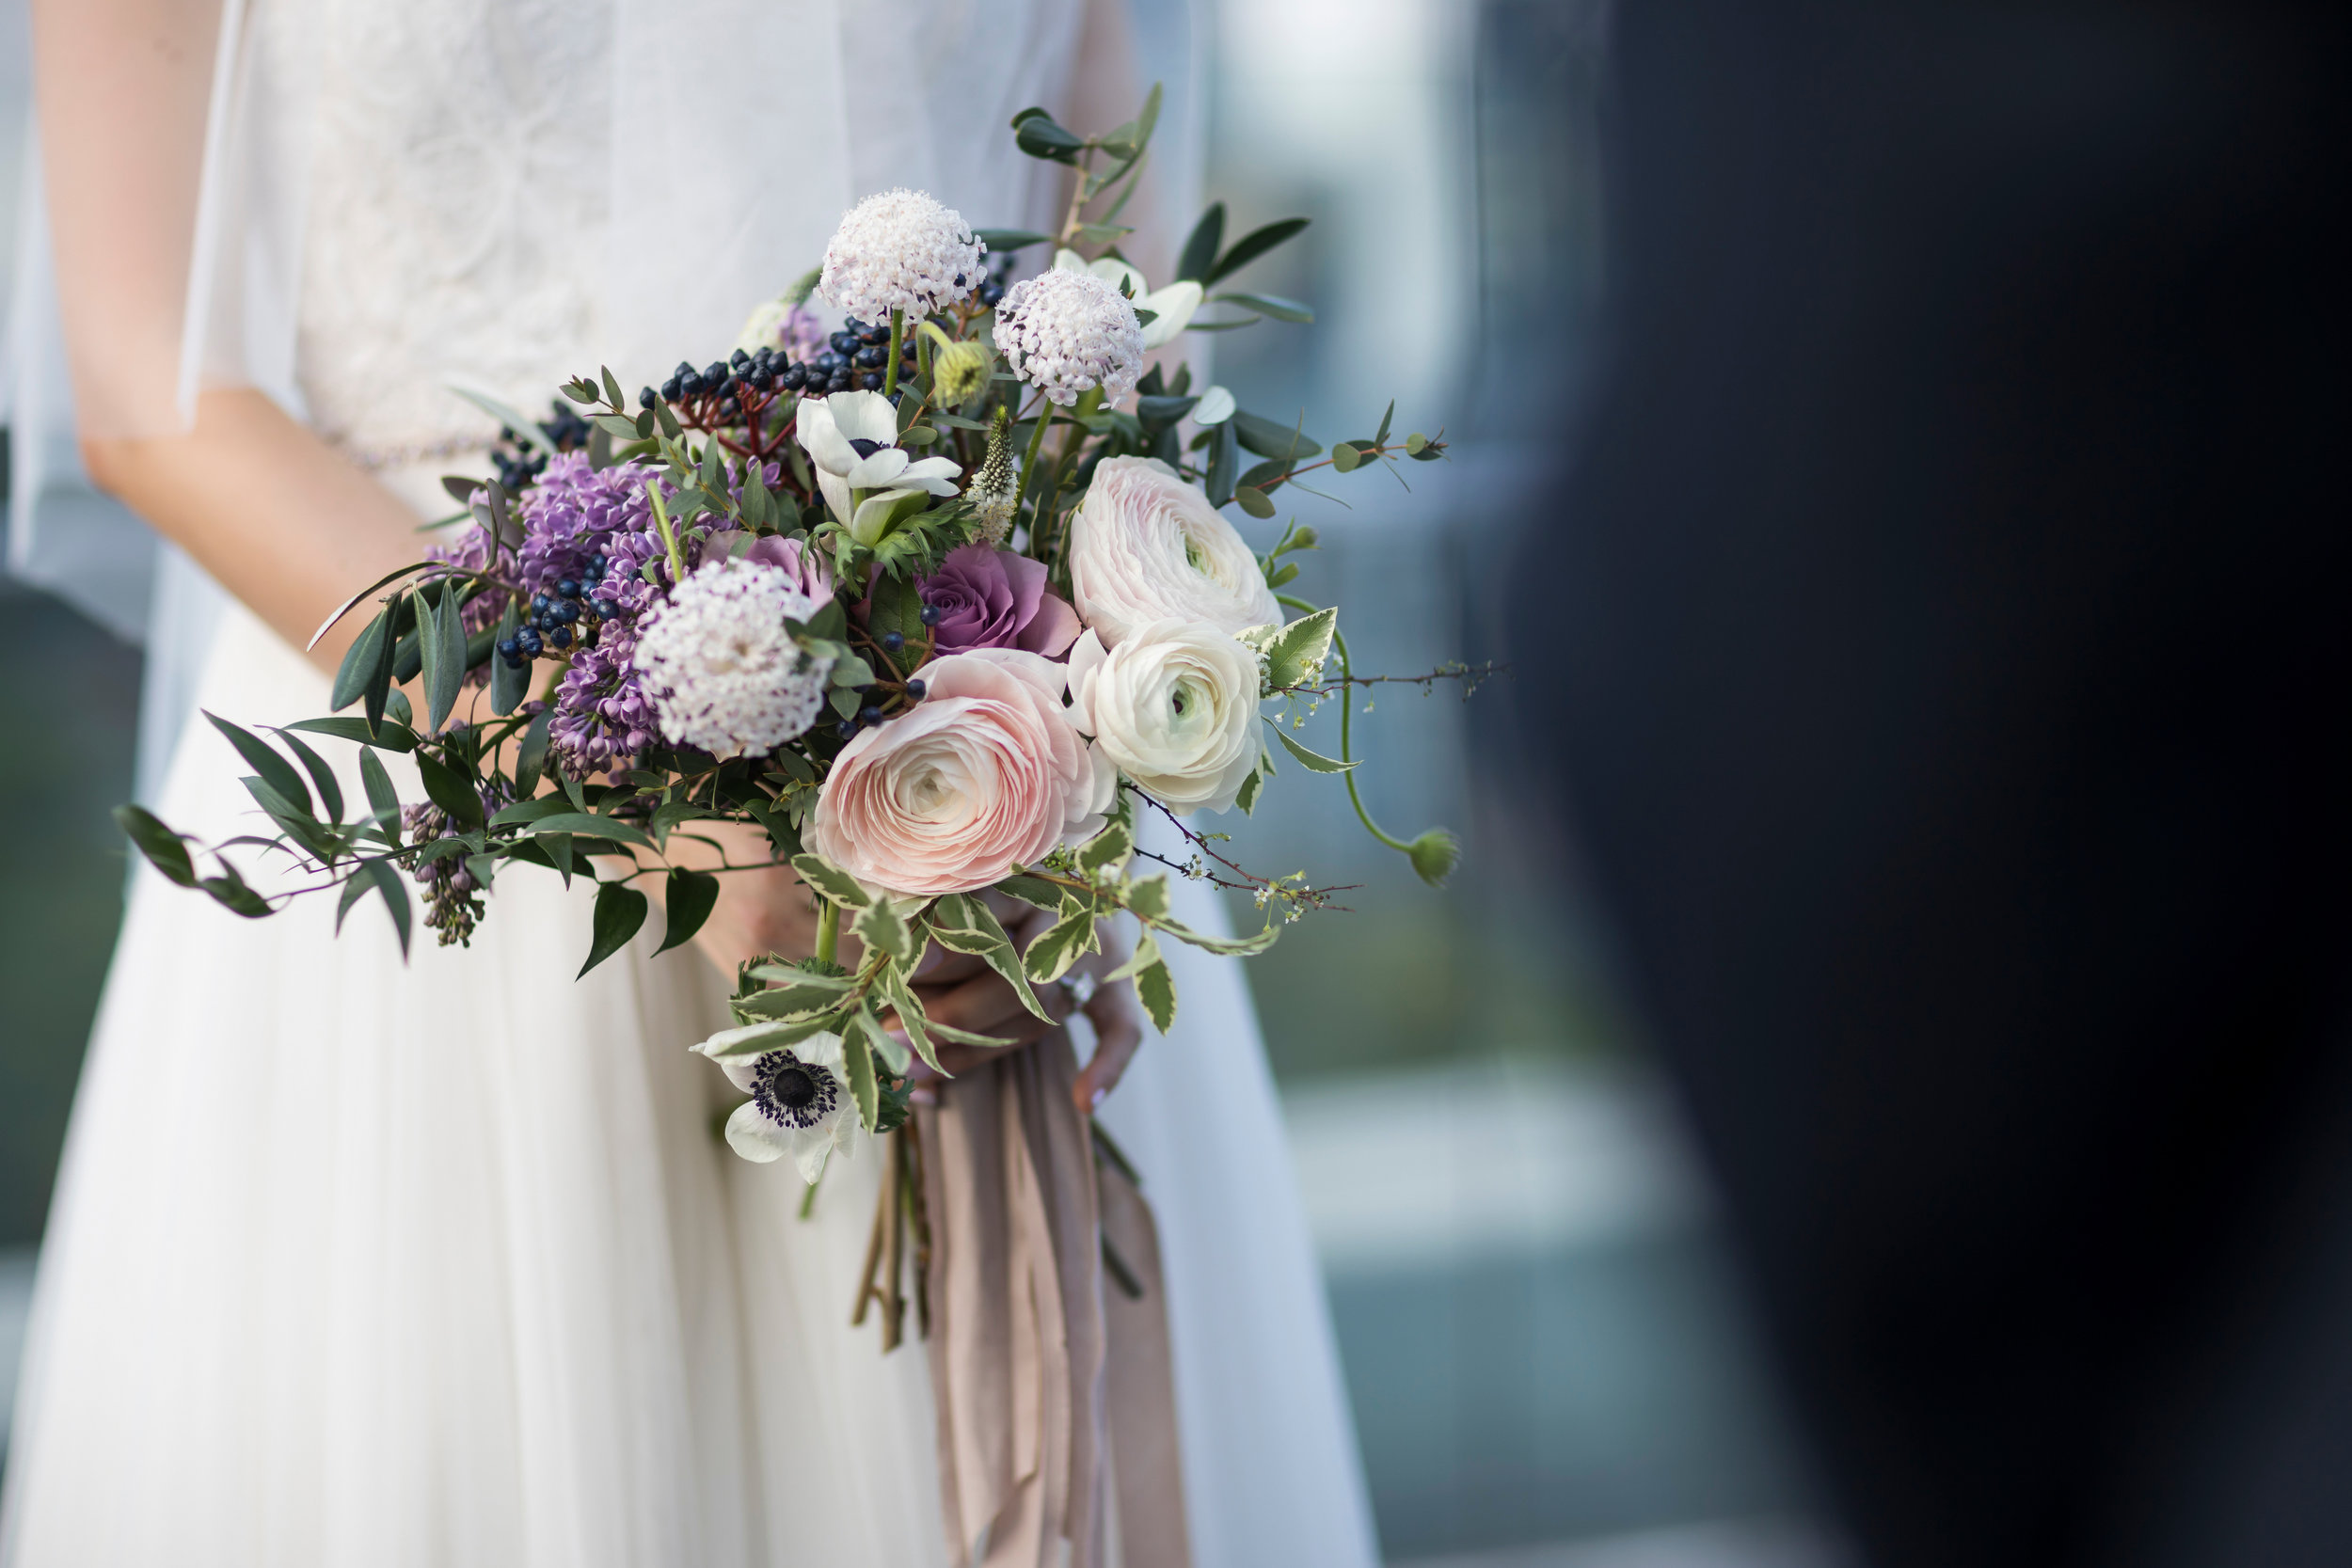 Shu bridal bouquet.jpg